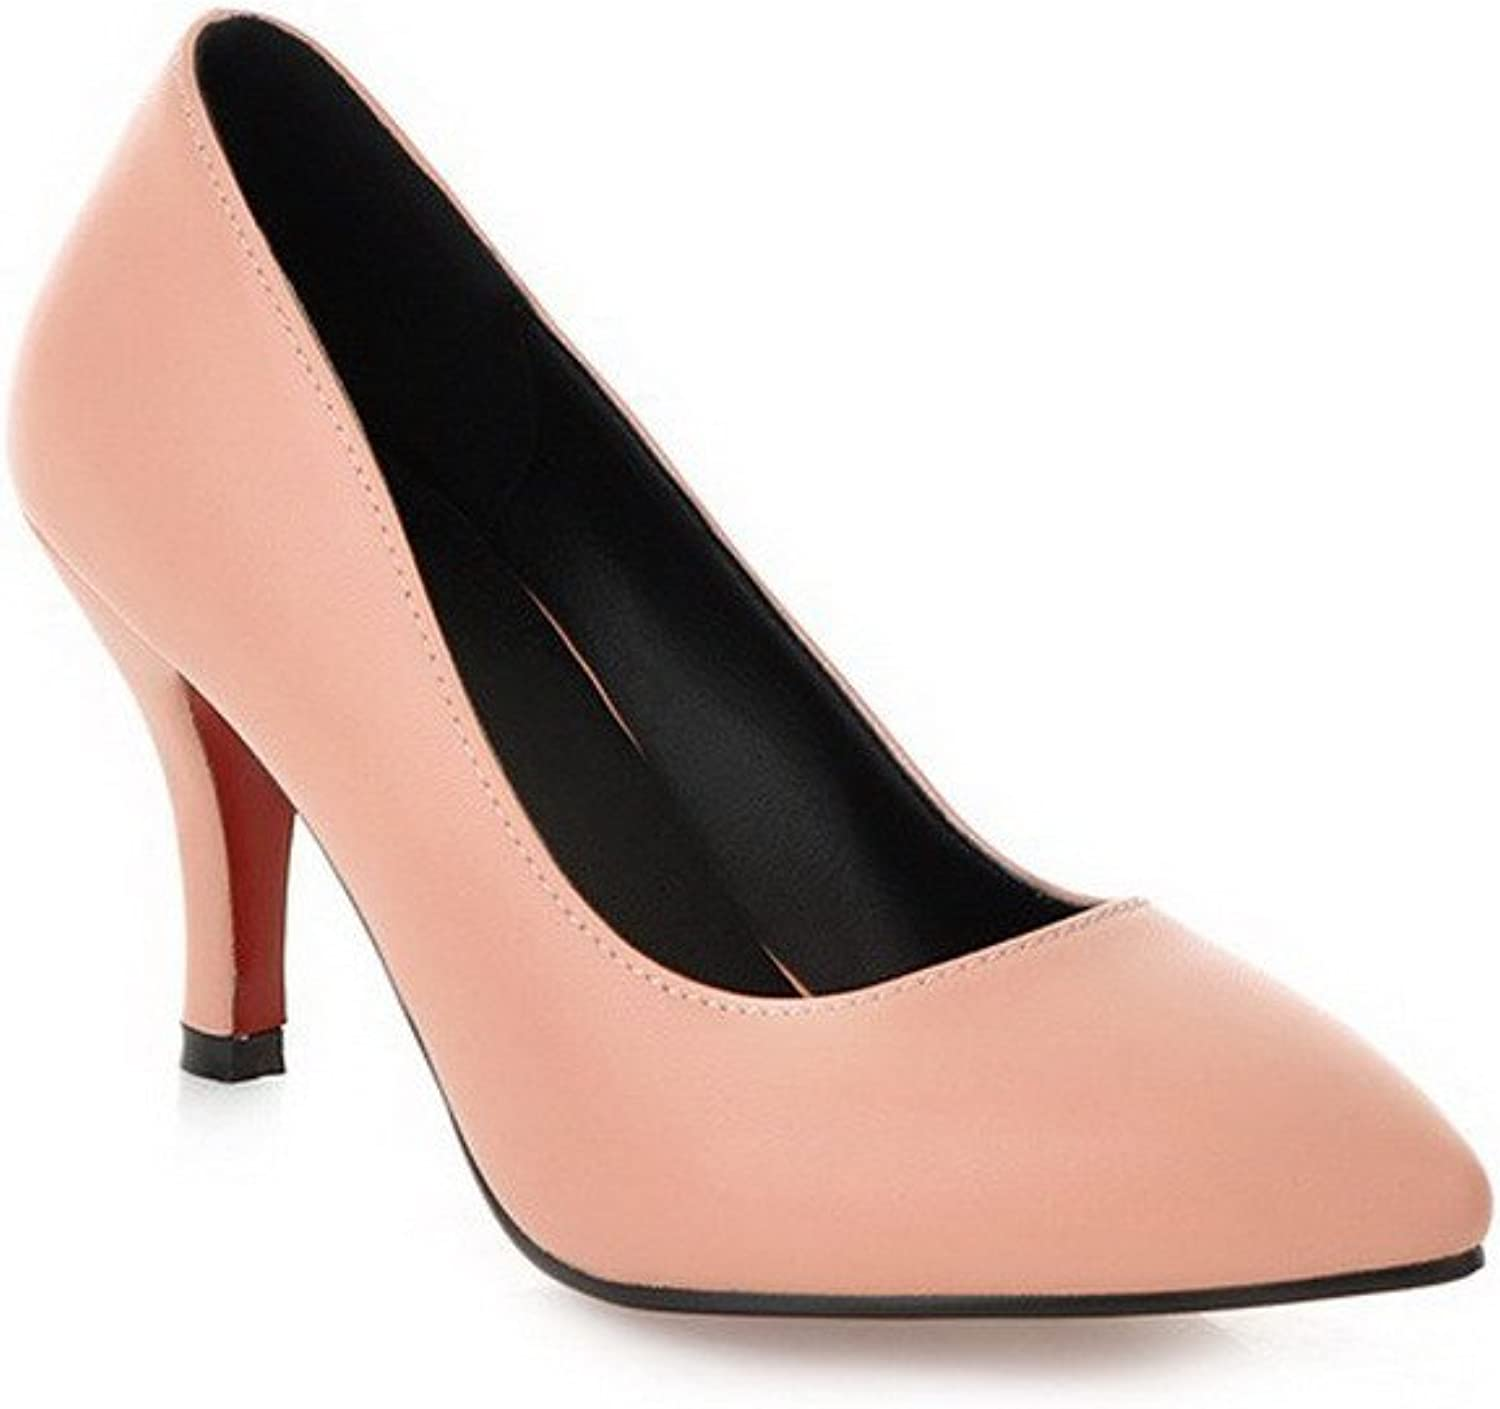 WeiPoot Women's Solid Pointed Closed Toe Soft Material PU Pumps-shoes, Pink, 38